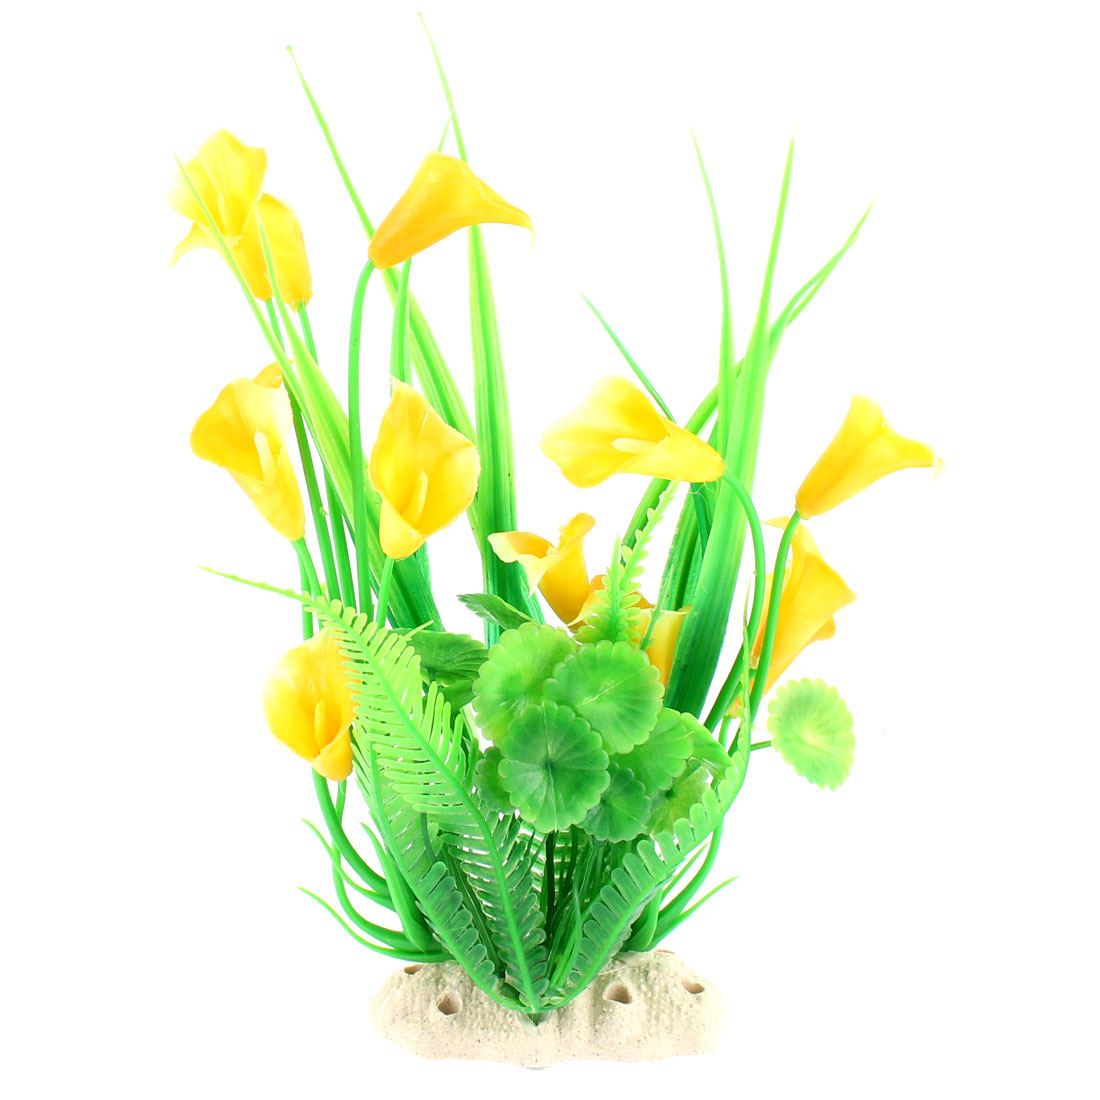 Imitated Plastic Water Plant Flower Grass Landscape Green Yellow for Fish Tank Aquarium